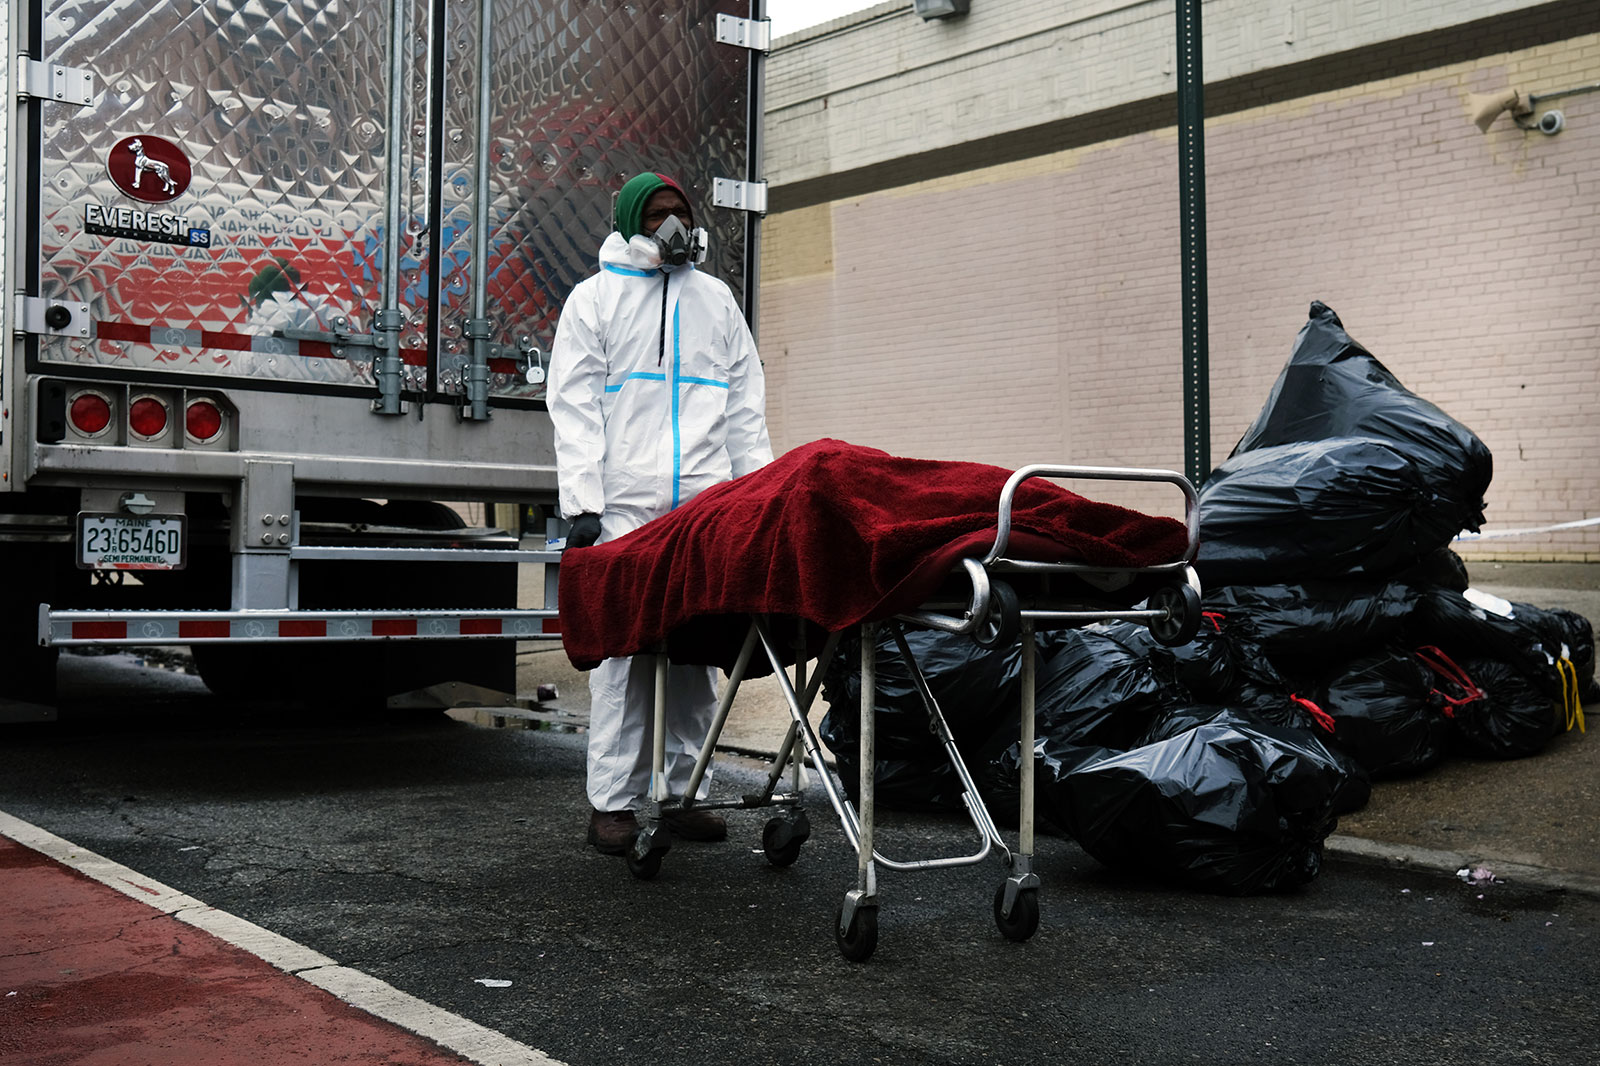 A body is moved from an unrefrigerated truck outside the Andrew Cleckley Funeral Home in Brooklyn, New York on April 30. The truck was being used to store bodies of coronavirus victims that the funeral home could not accommodate.